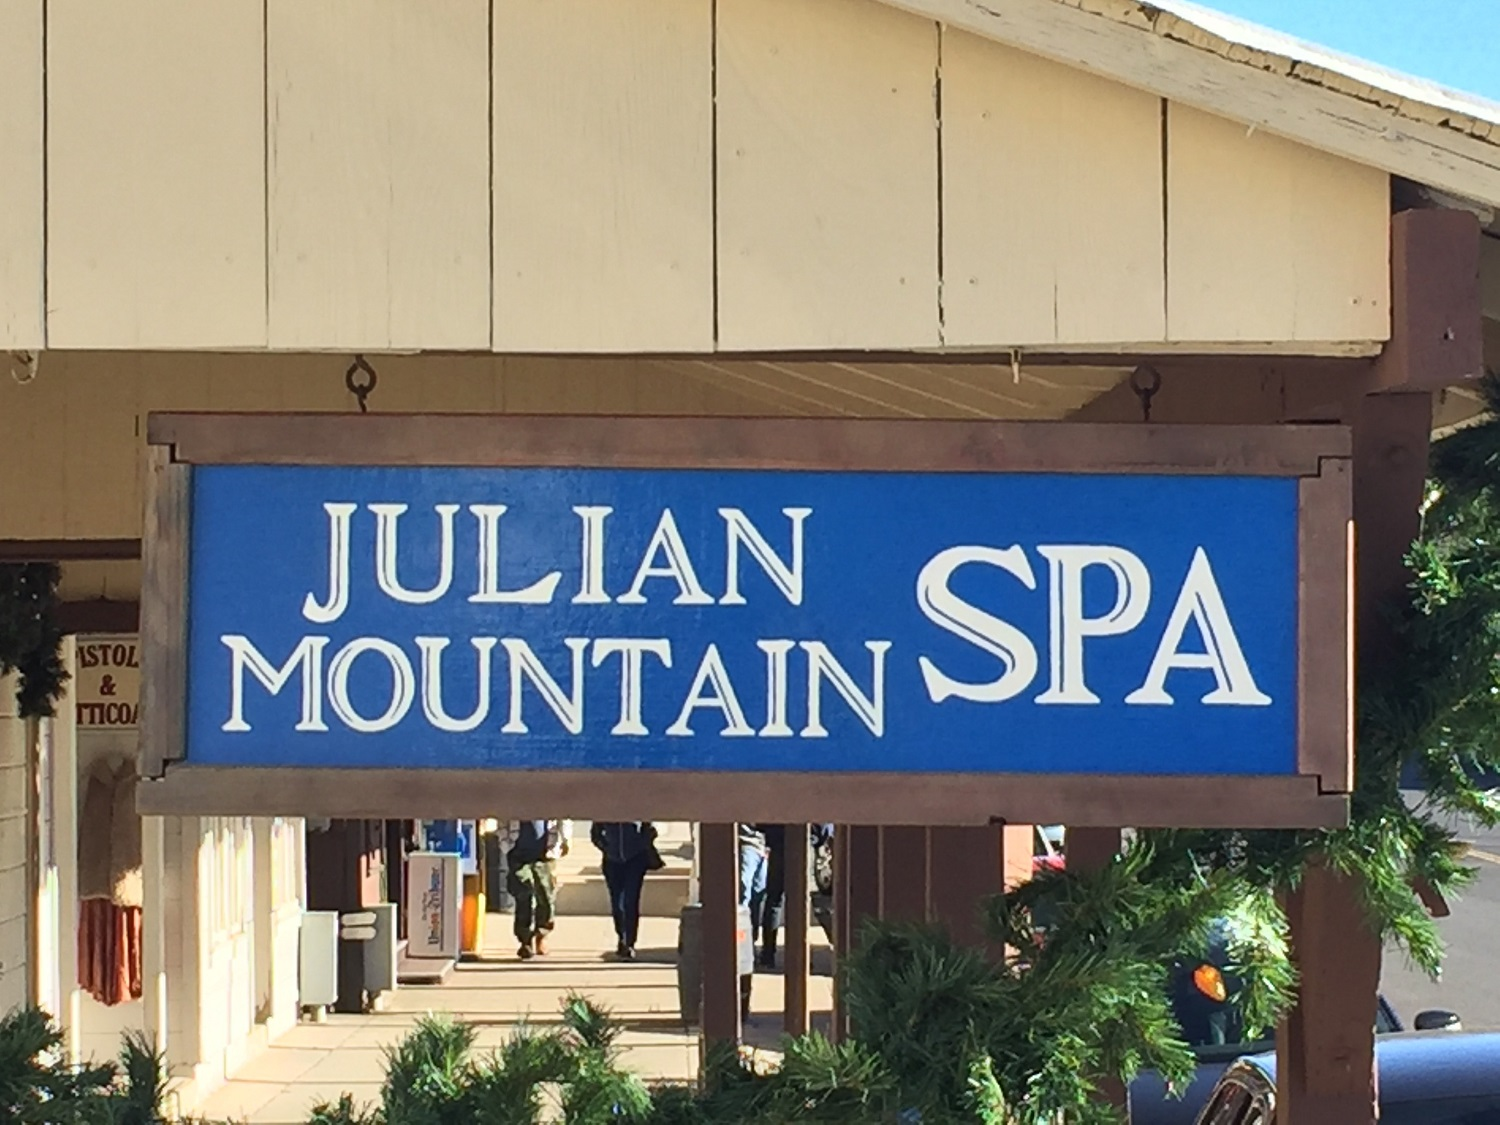 Julian Mountain Spa signage